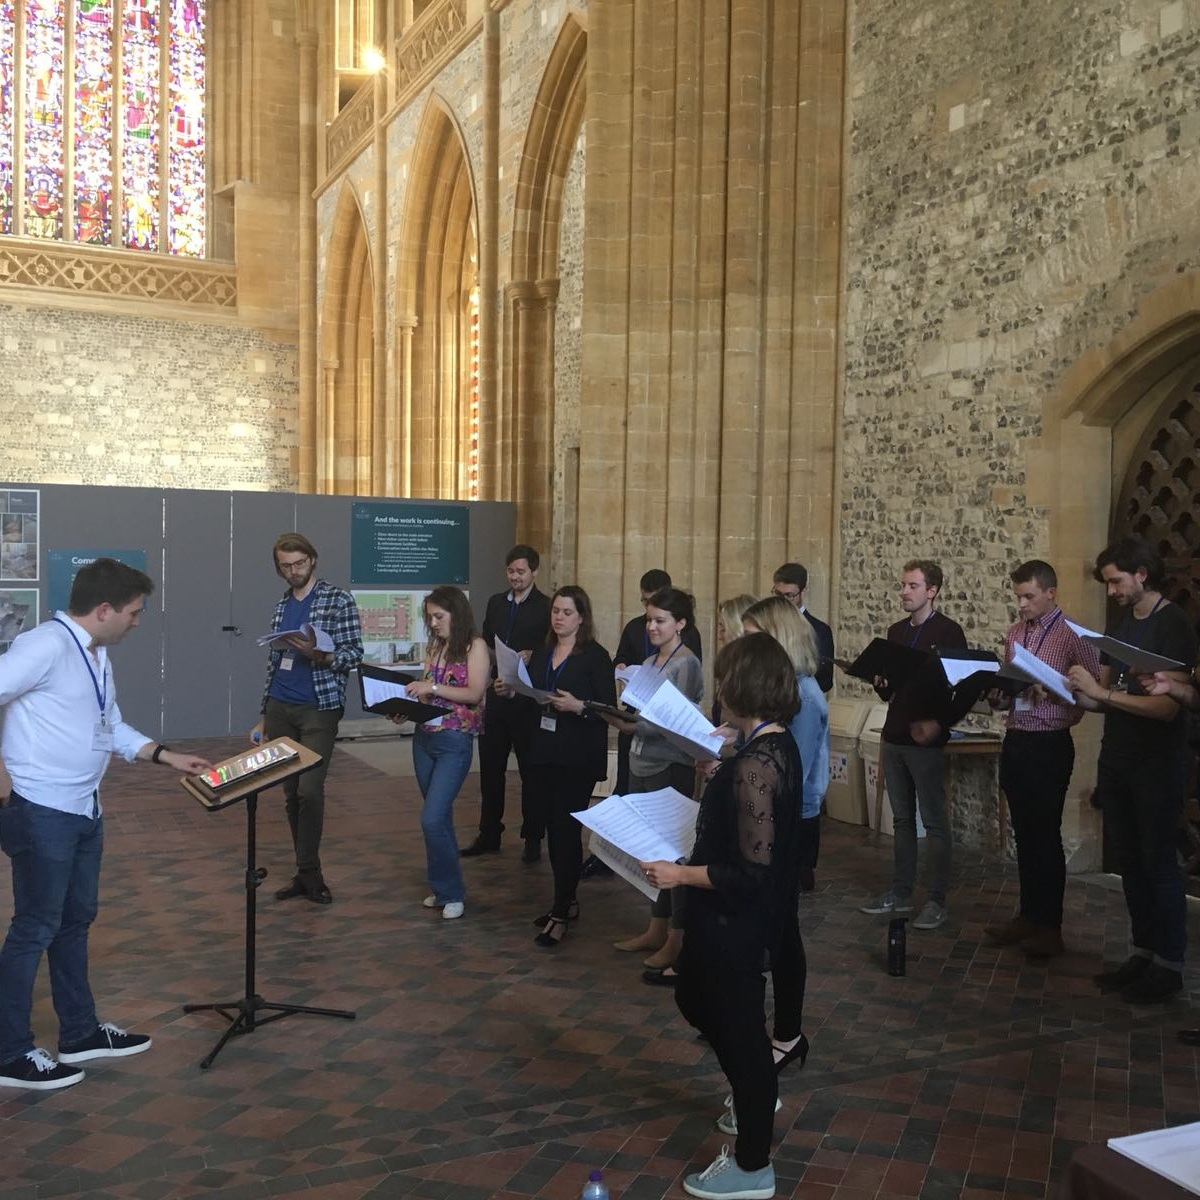 CHORAL EVENSONG - Thurs 1 August 5:30PMFestival Evensong with VOCES8 and the VOCES8 Scholars.Free entry; no ticket required